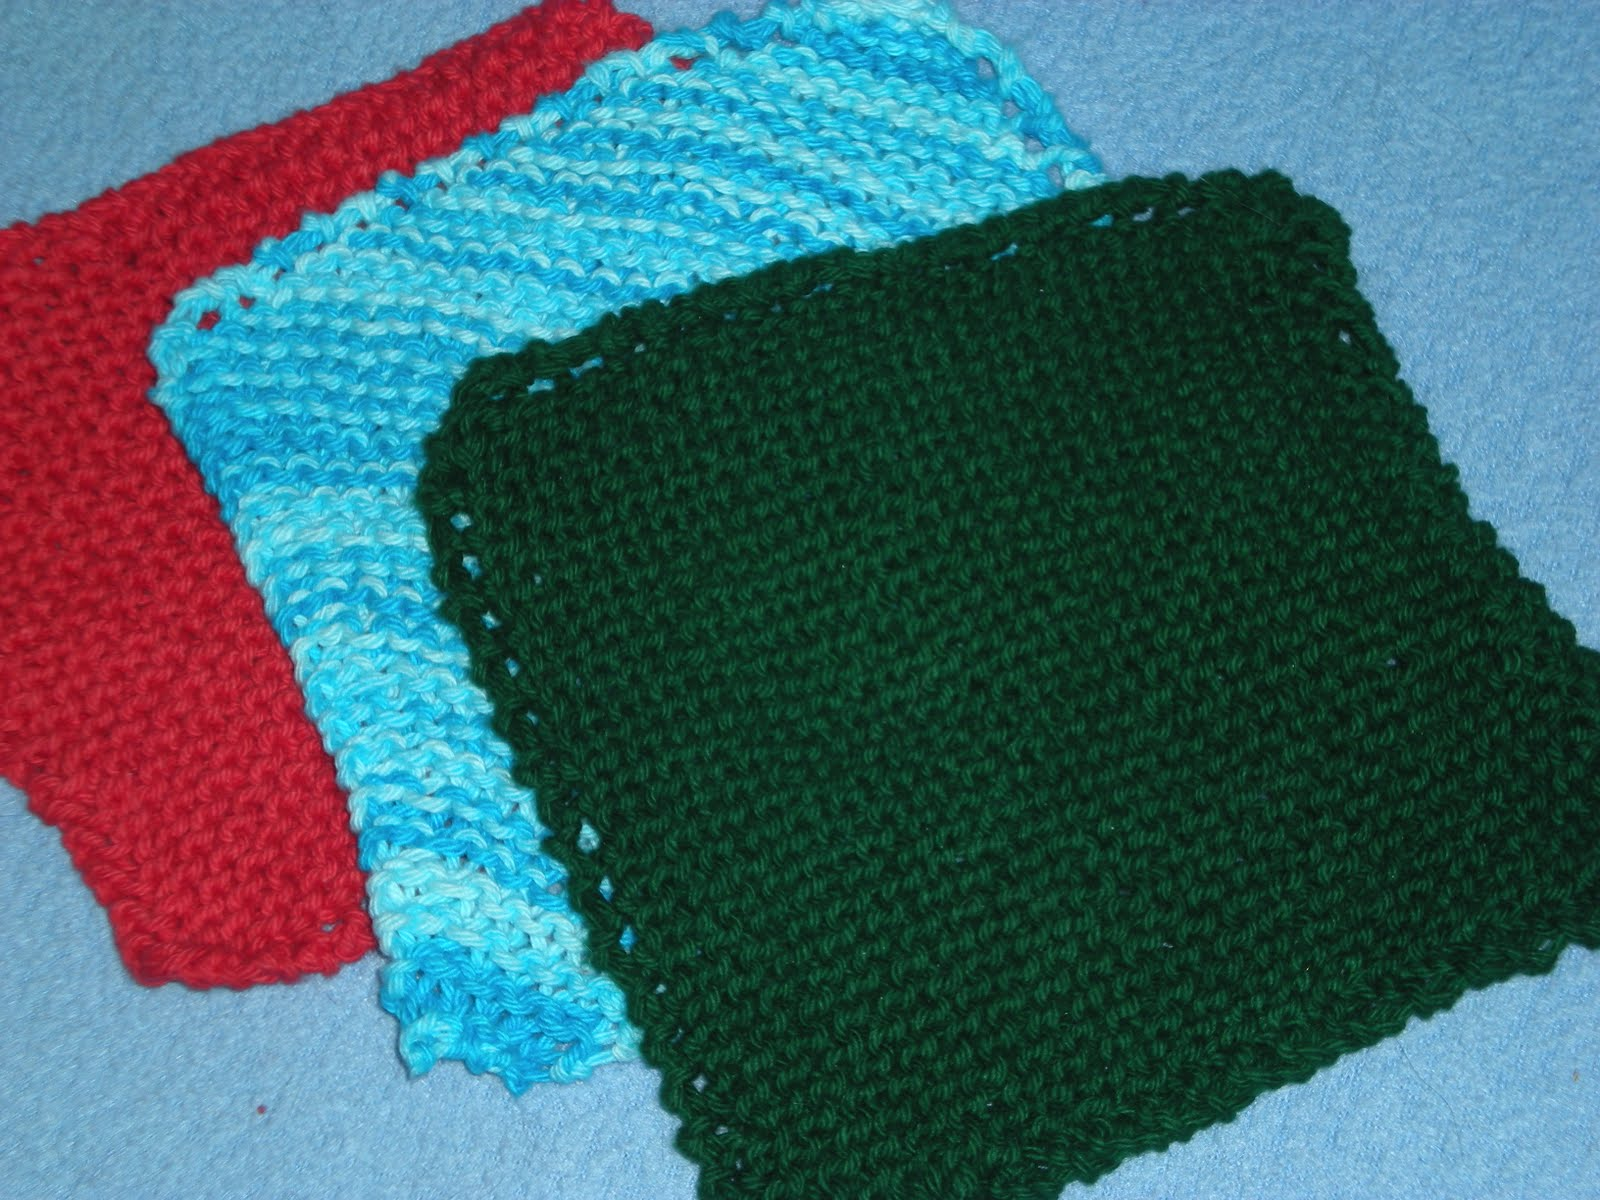 Knit Dishcloths Free Patterns : FREE KNIT DISHCLOTH PATTERNS   Free Patterns